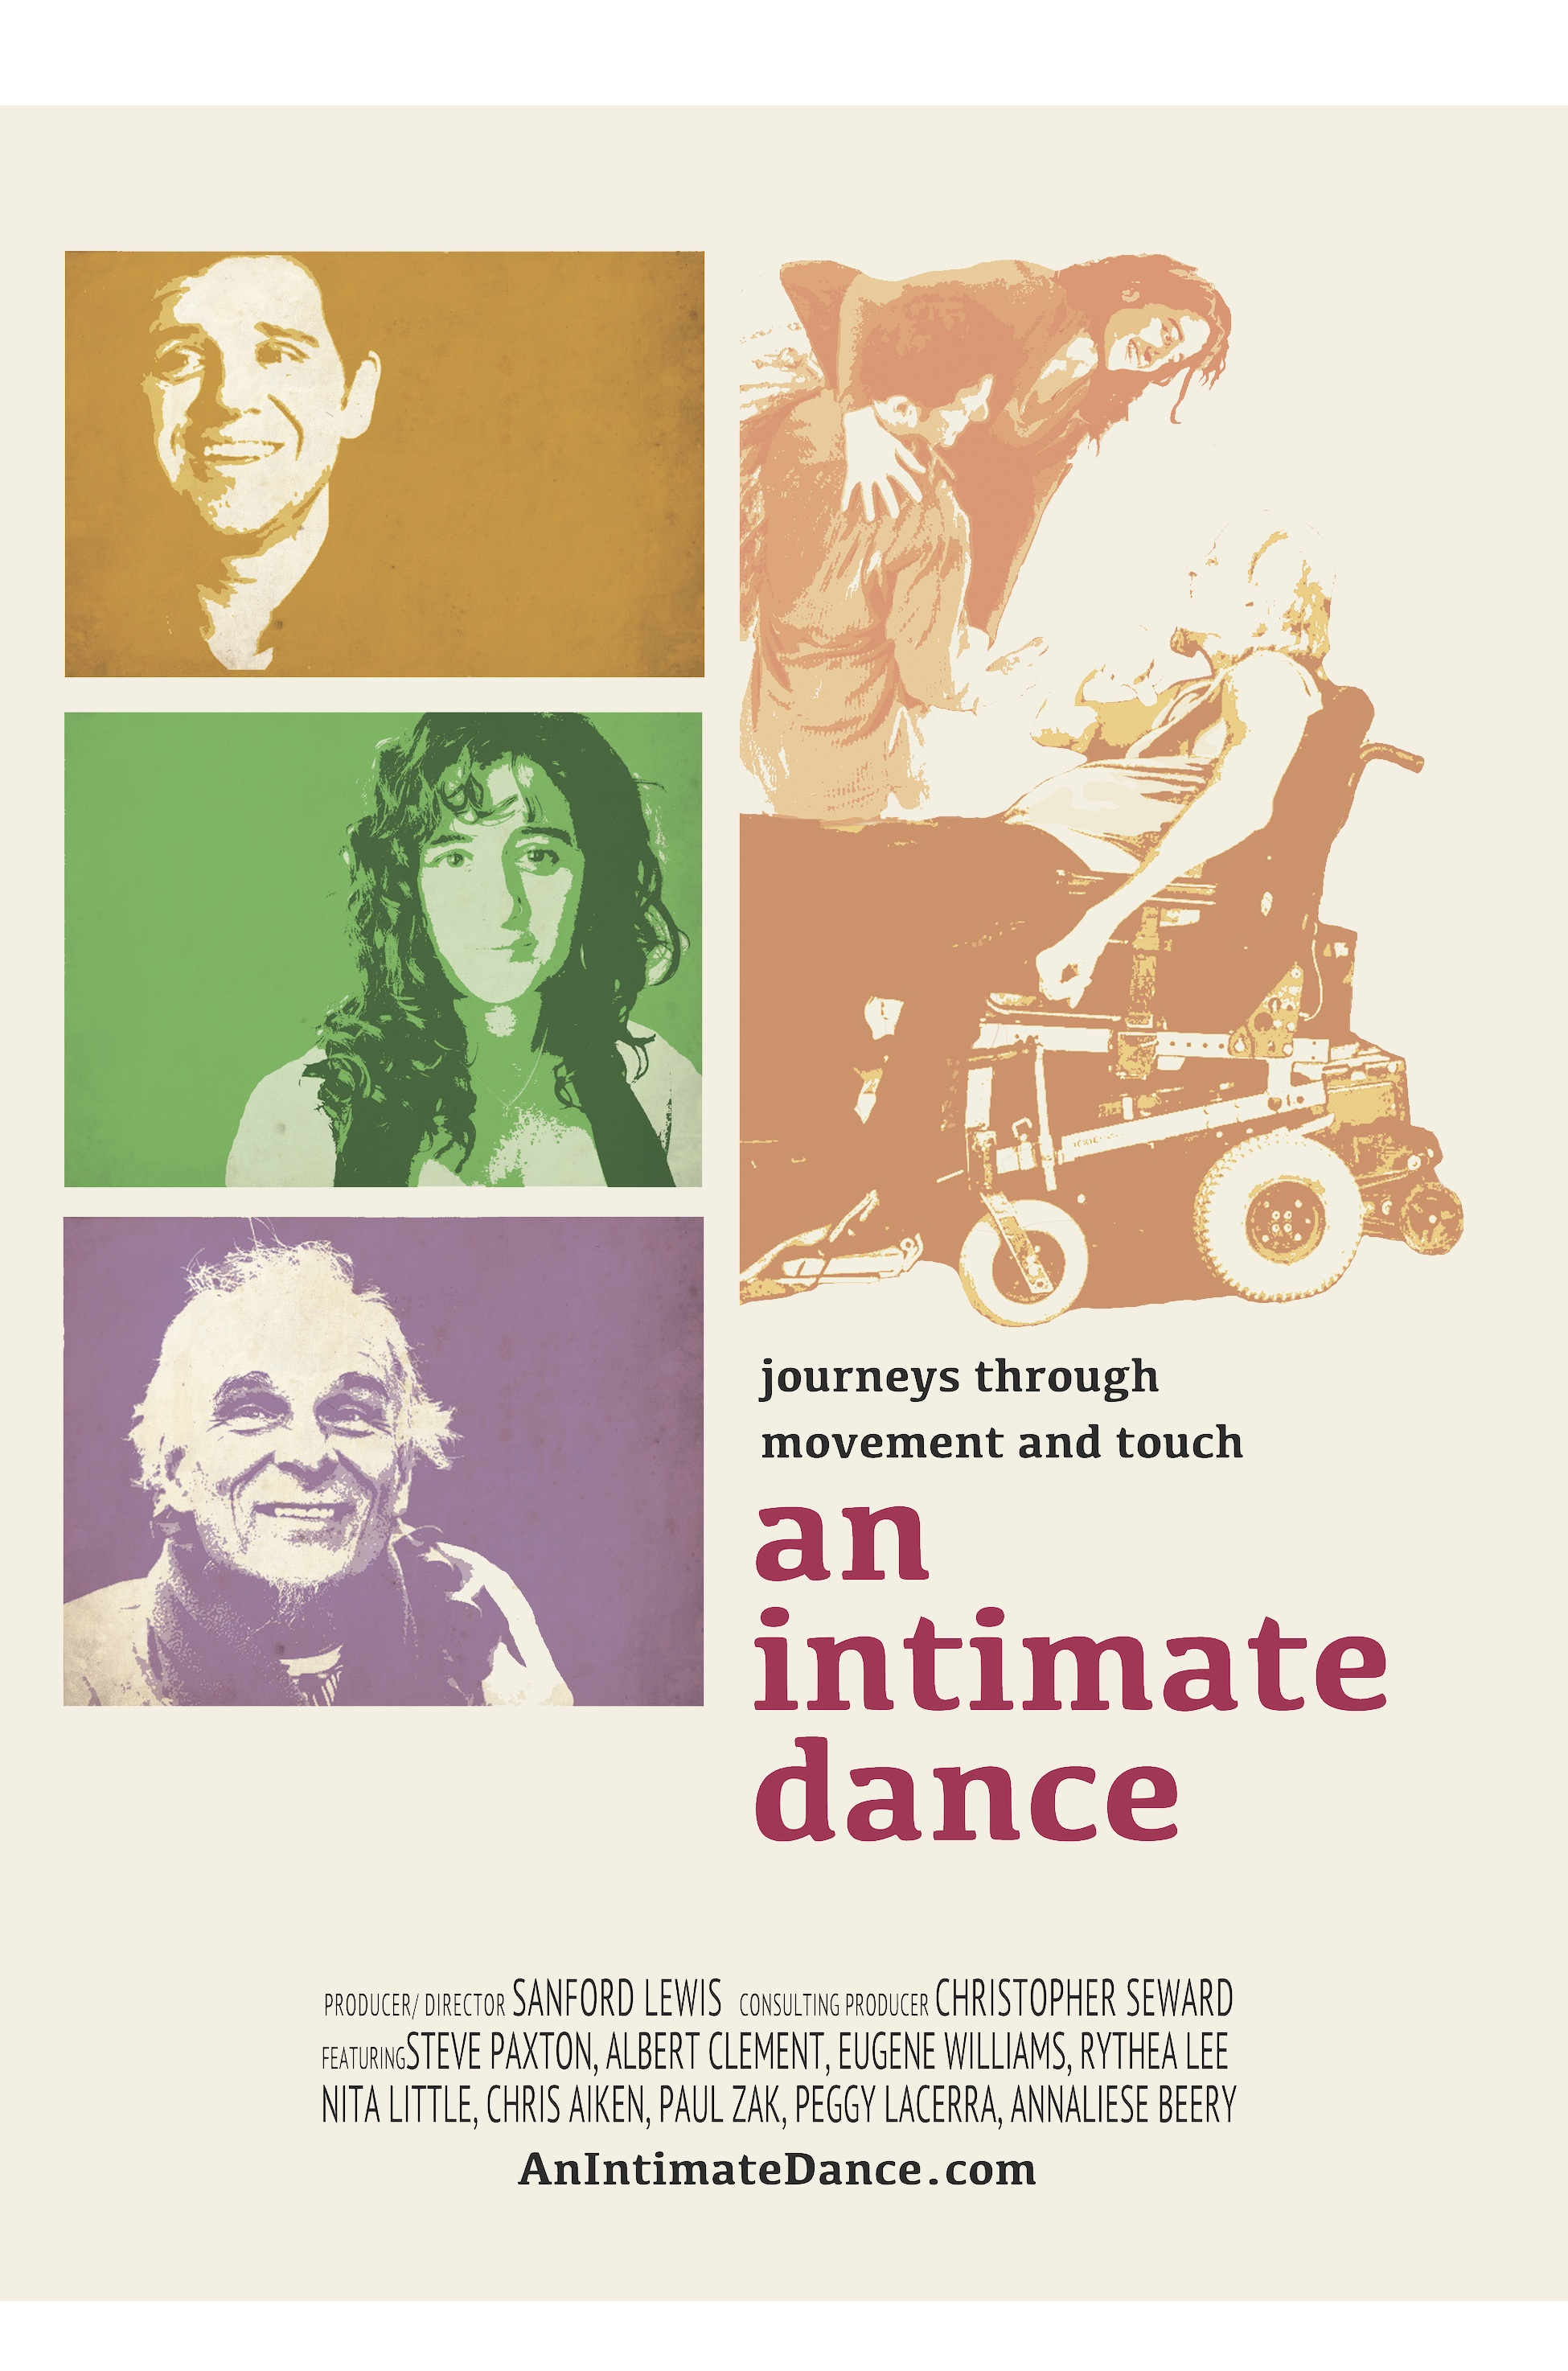 An intimate dance: journeys through movement and touch